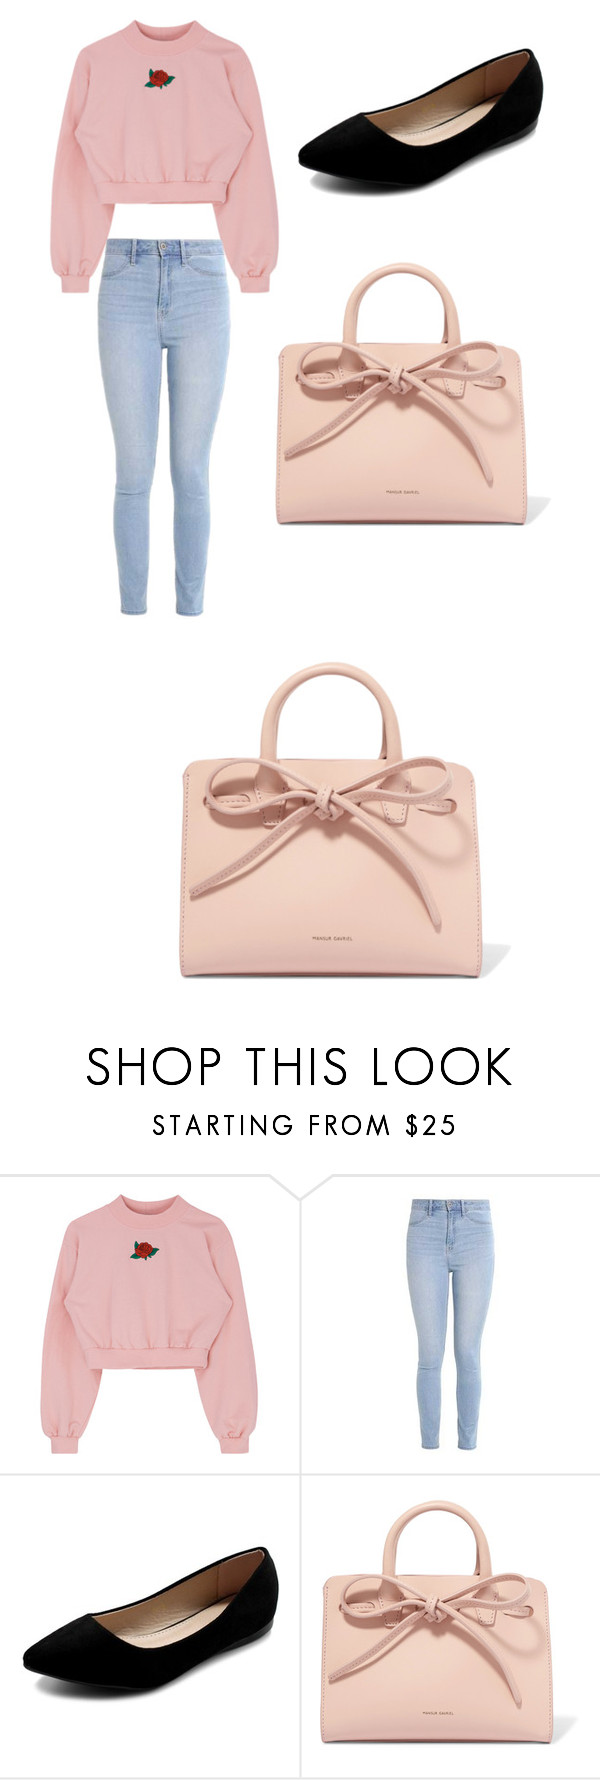 """""""Slay2"""" by yasminbendinha ❤ liked on Polyvore featuring Hollister Co., Ollio and Mansur Gavriel"""